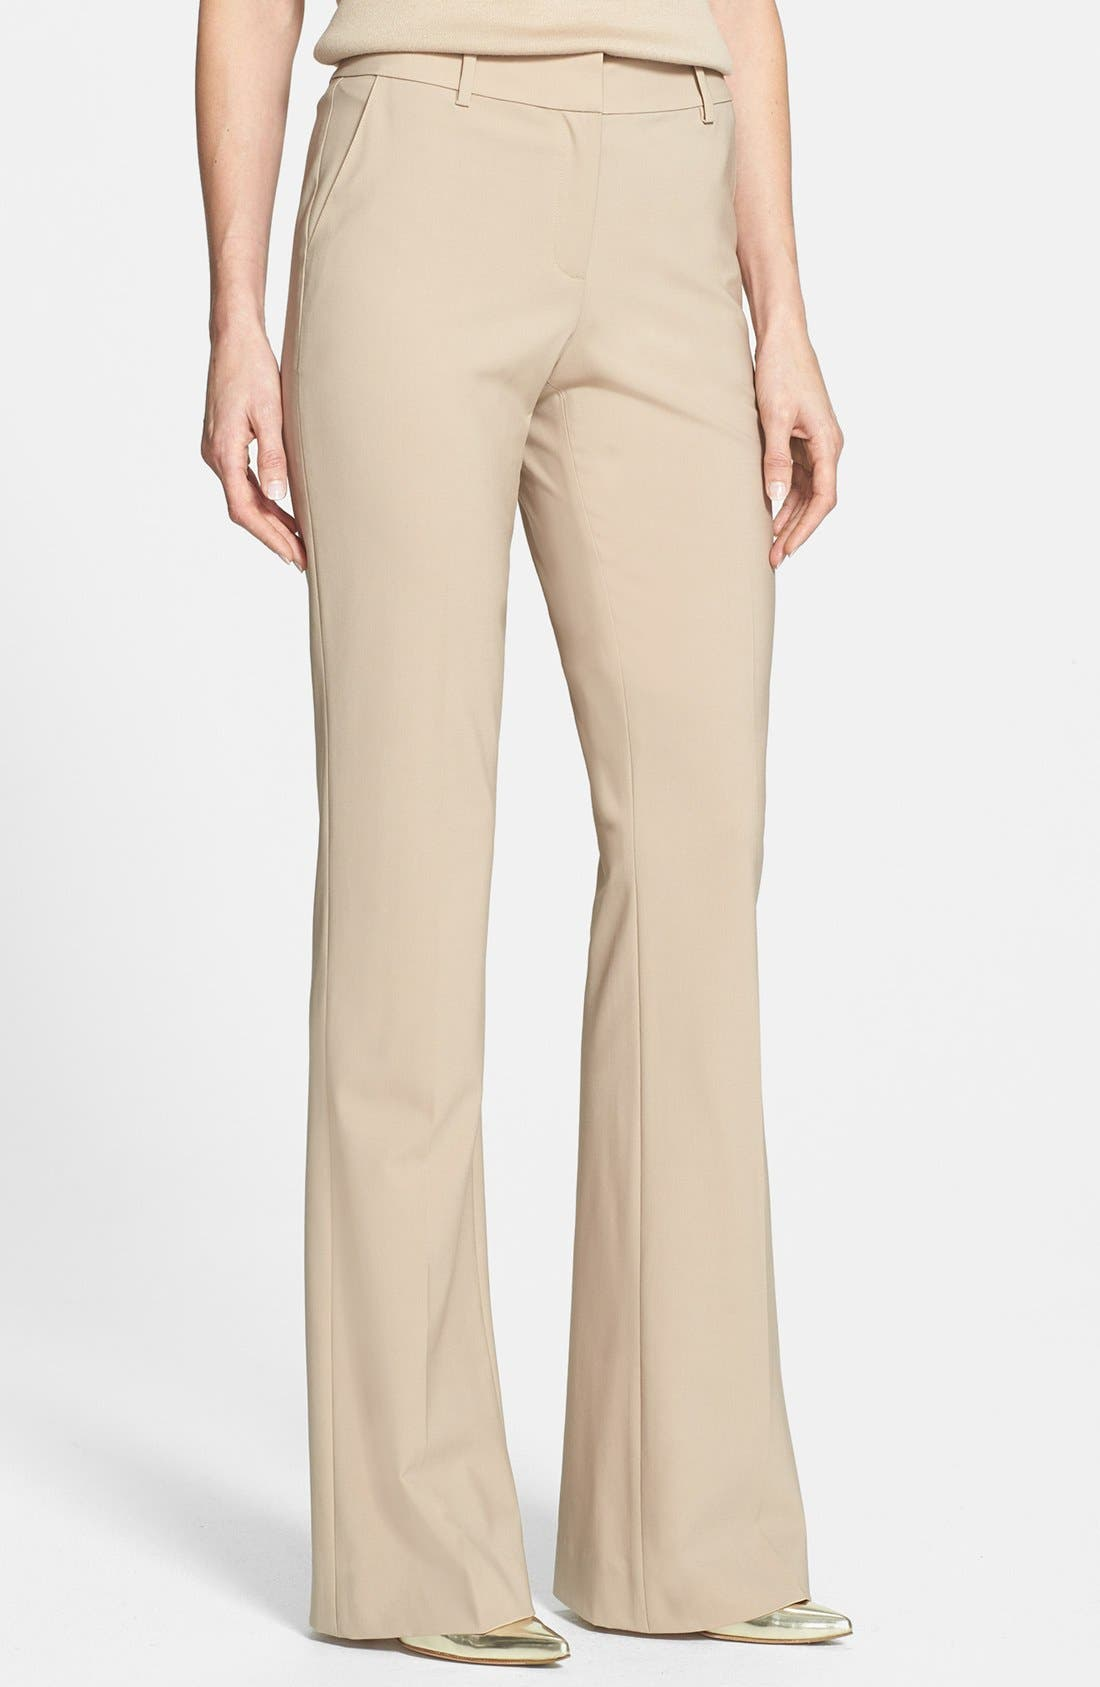 Alternate Image 1 Selected - St. John Collection 'Annabel' Narrow Bootcut Tropical Wool Pants